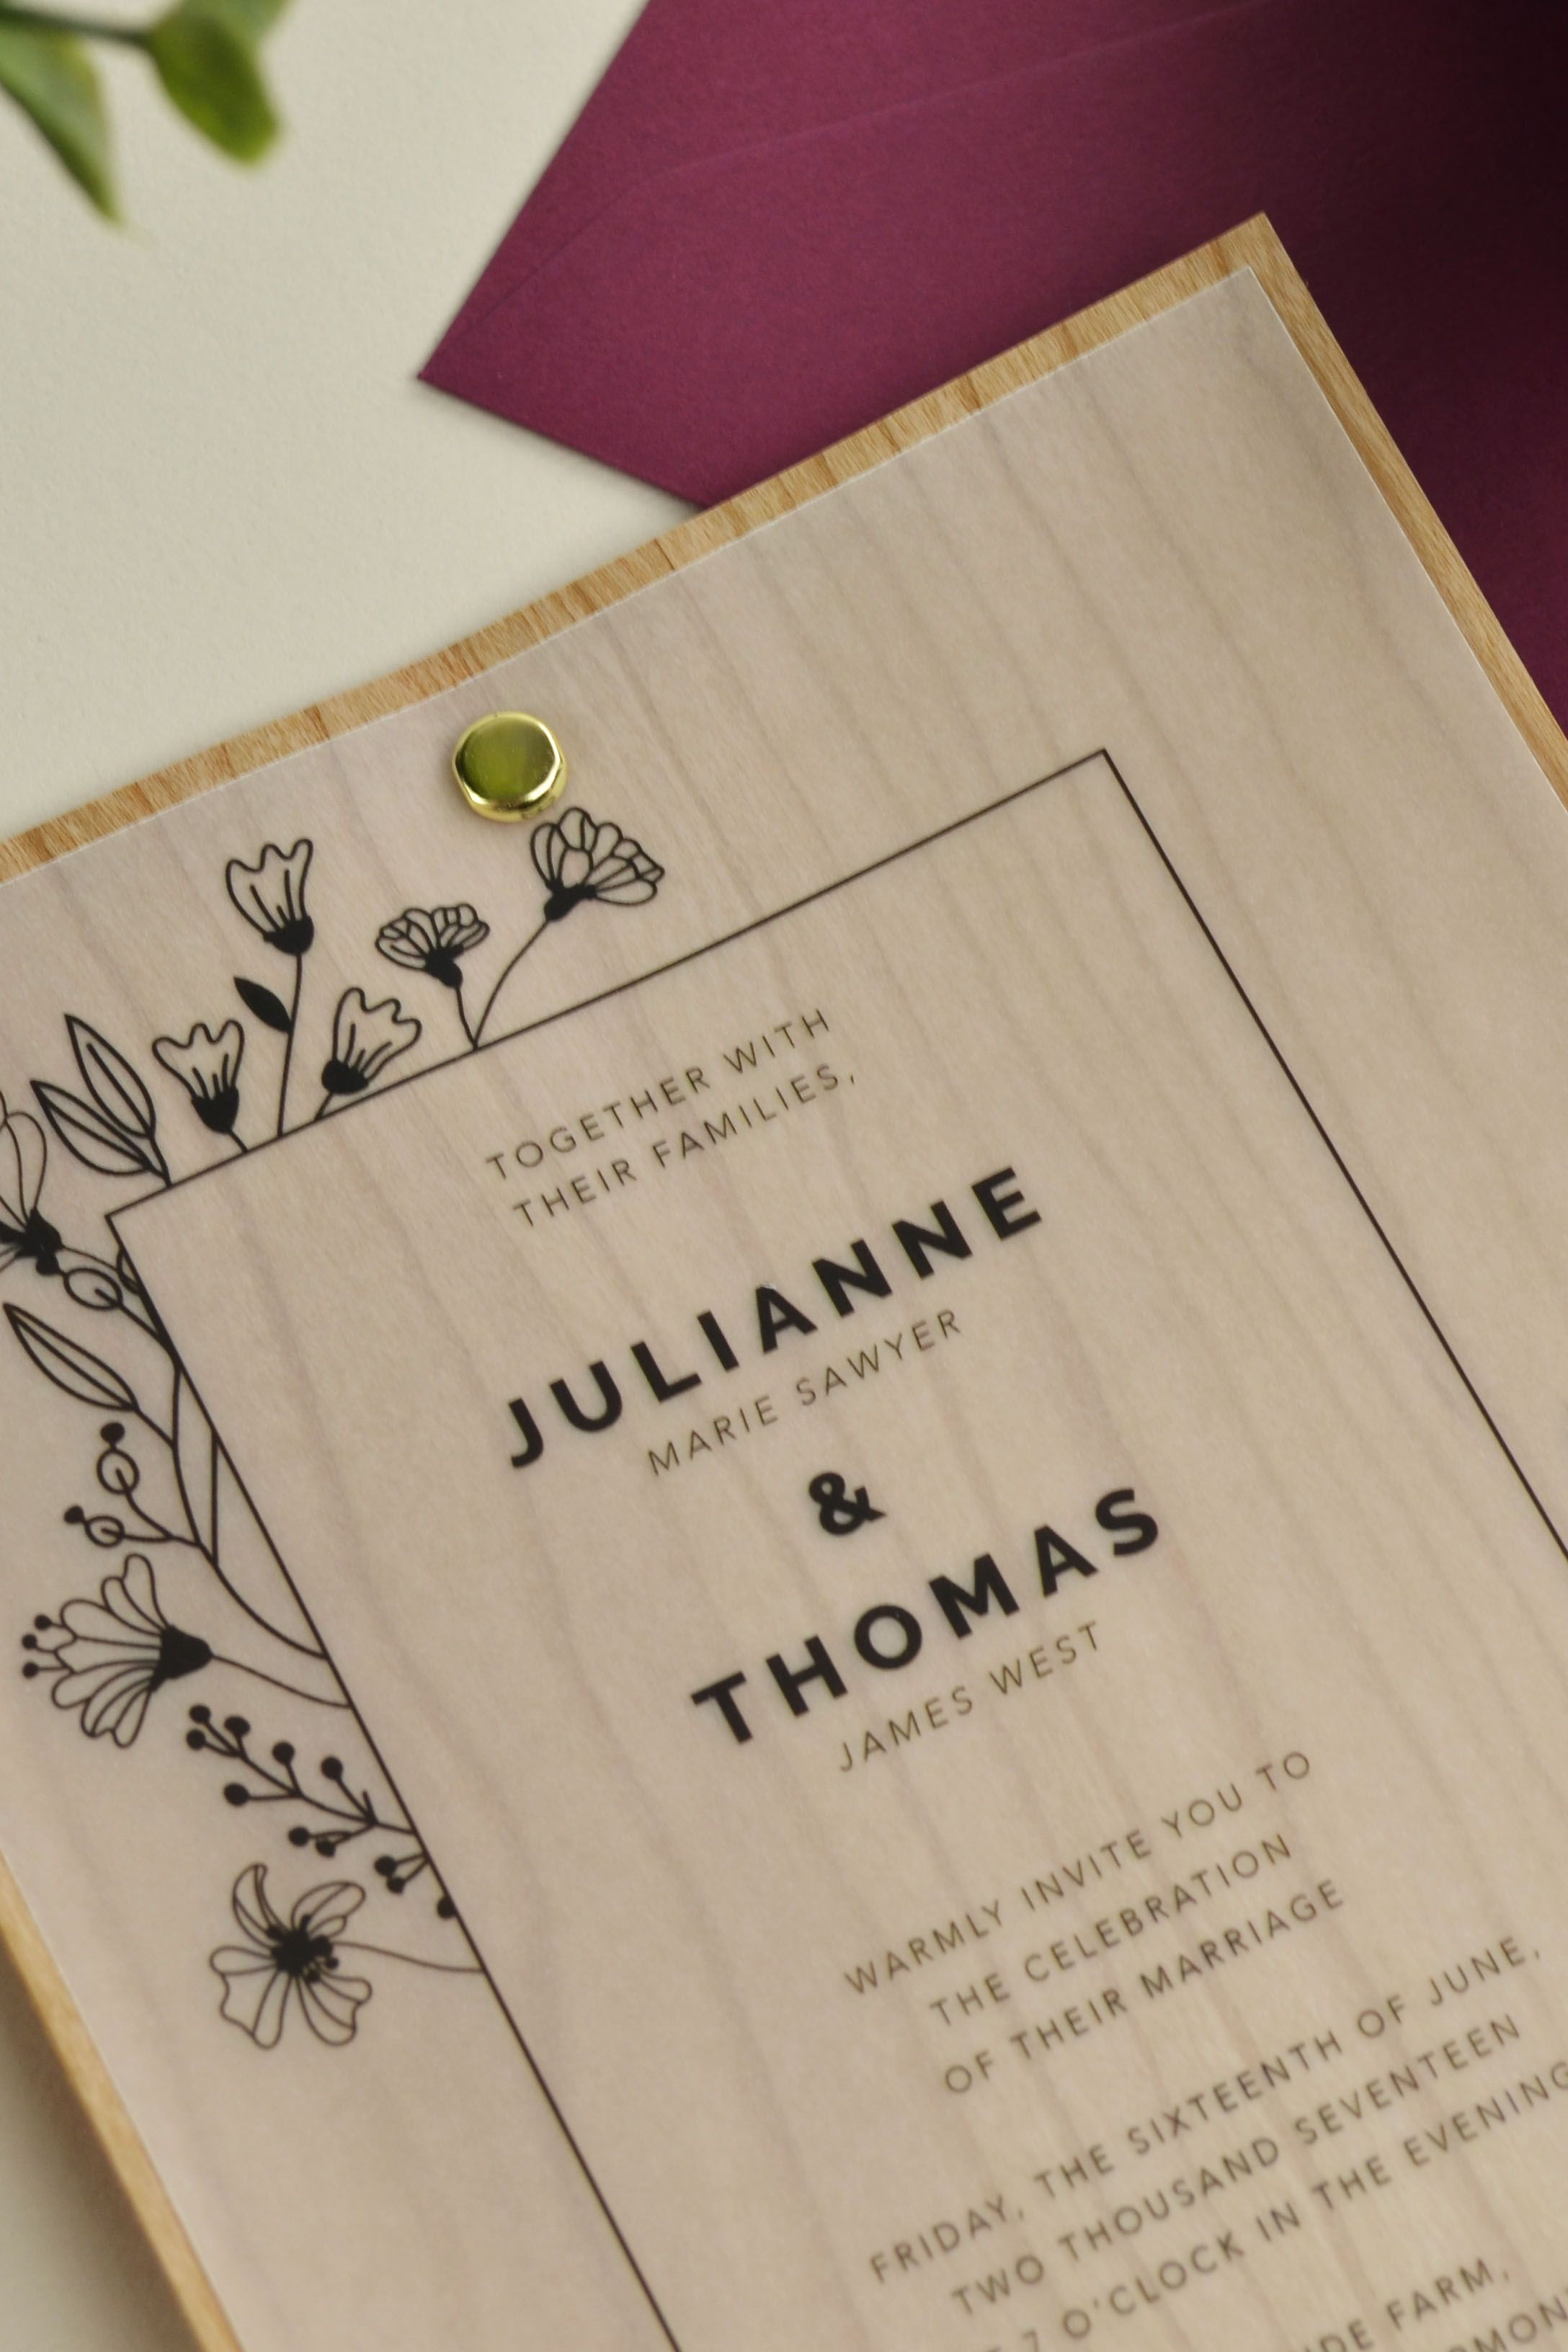 Vellum is making a comeback! Using this semi-transparent paper will give your DIY wedding invitations a beautifully light and airy look. It's budget friendly and easy to print on with most home printers. Pair vellum with additional paper… . .